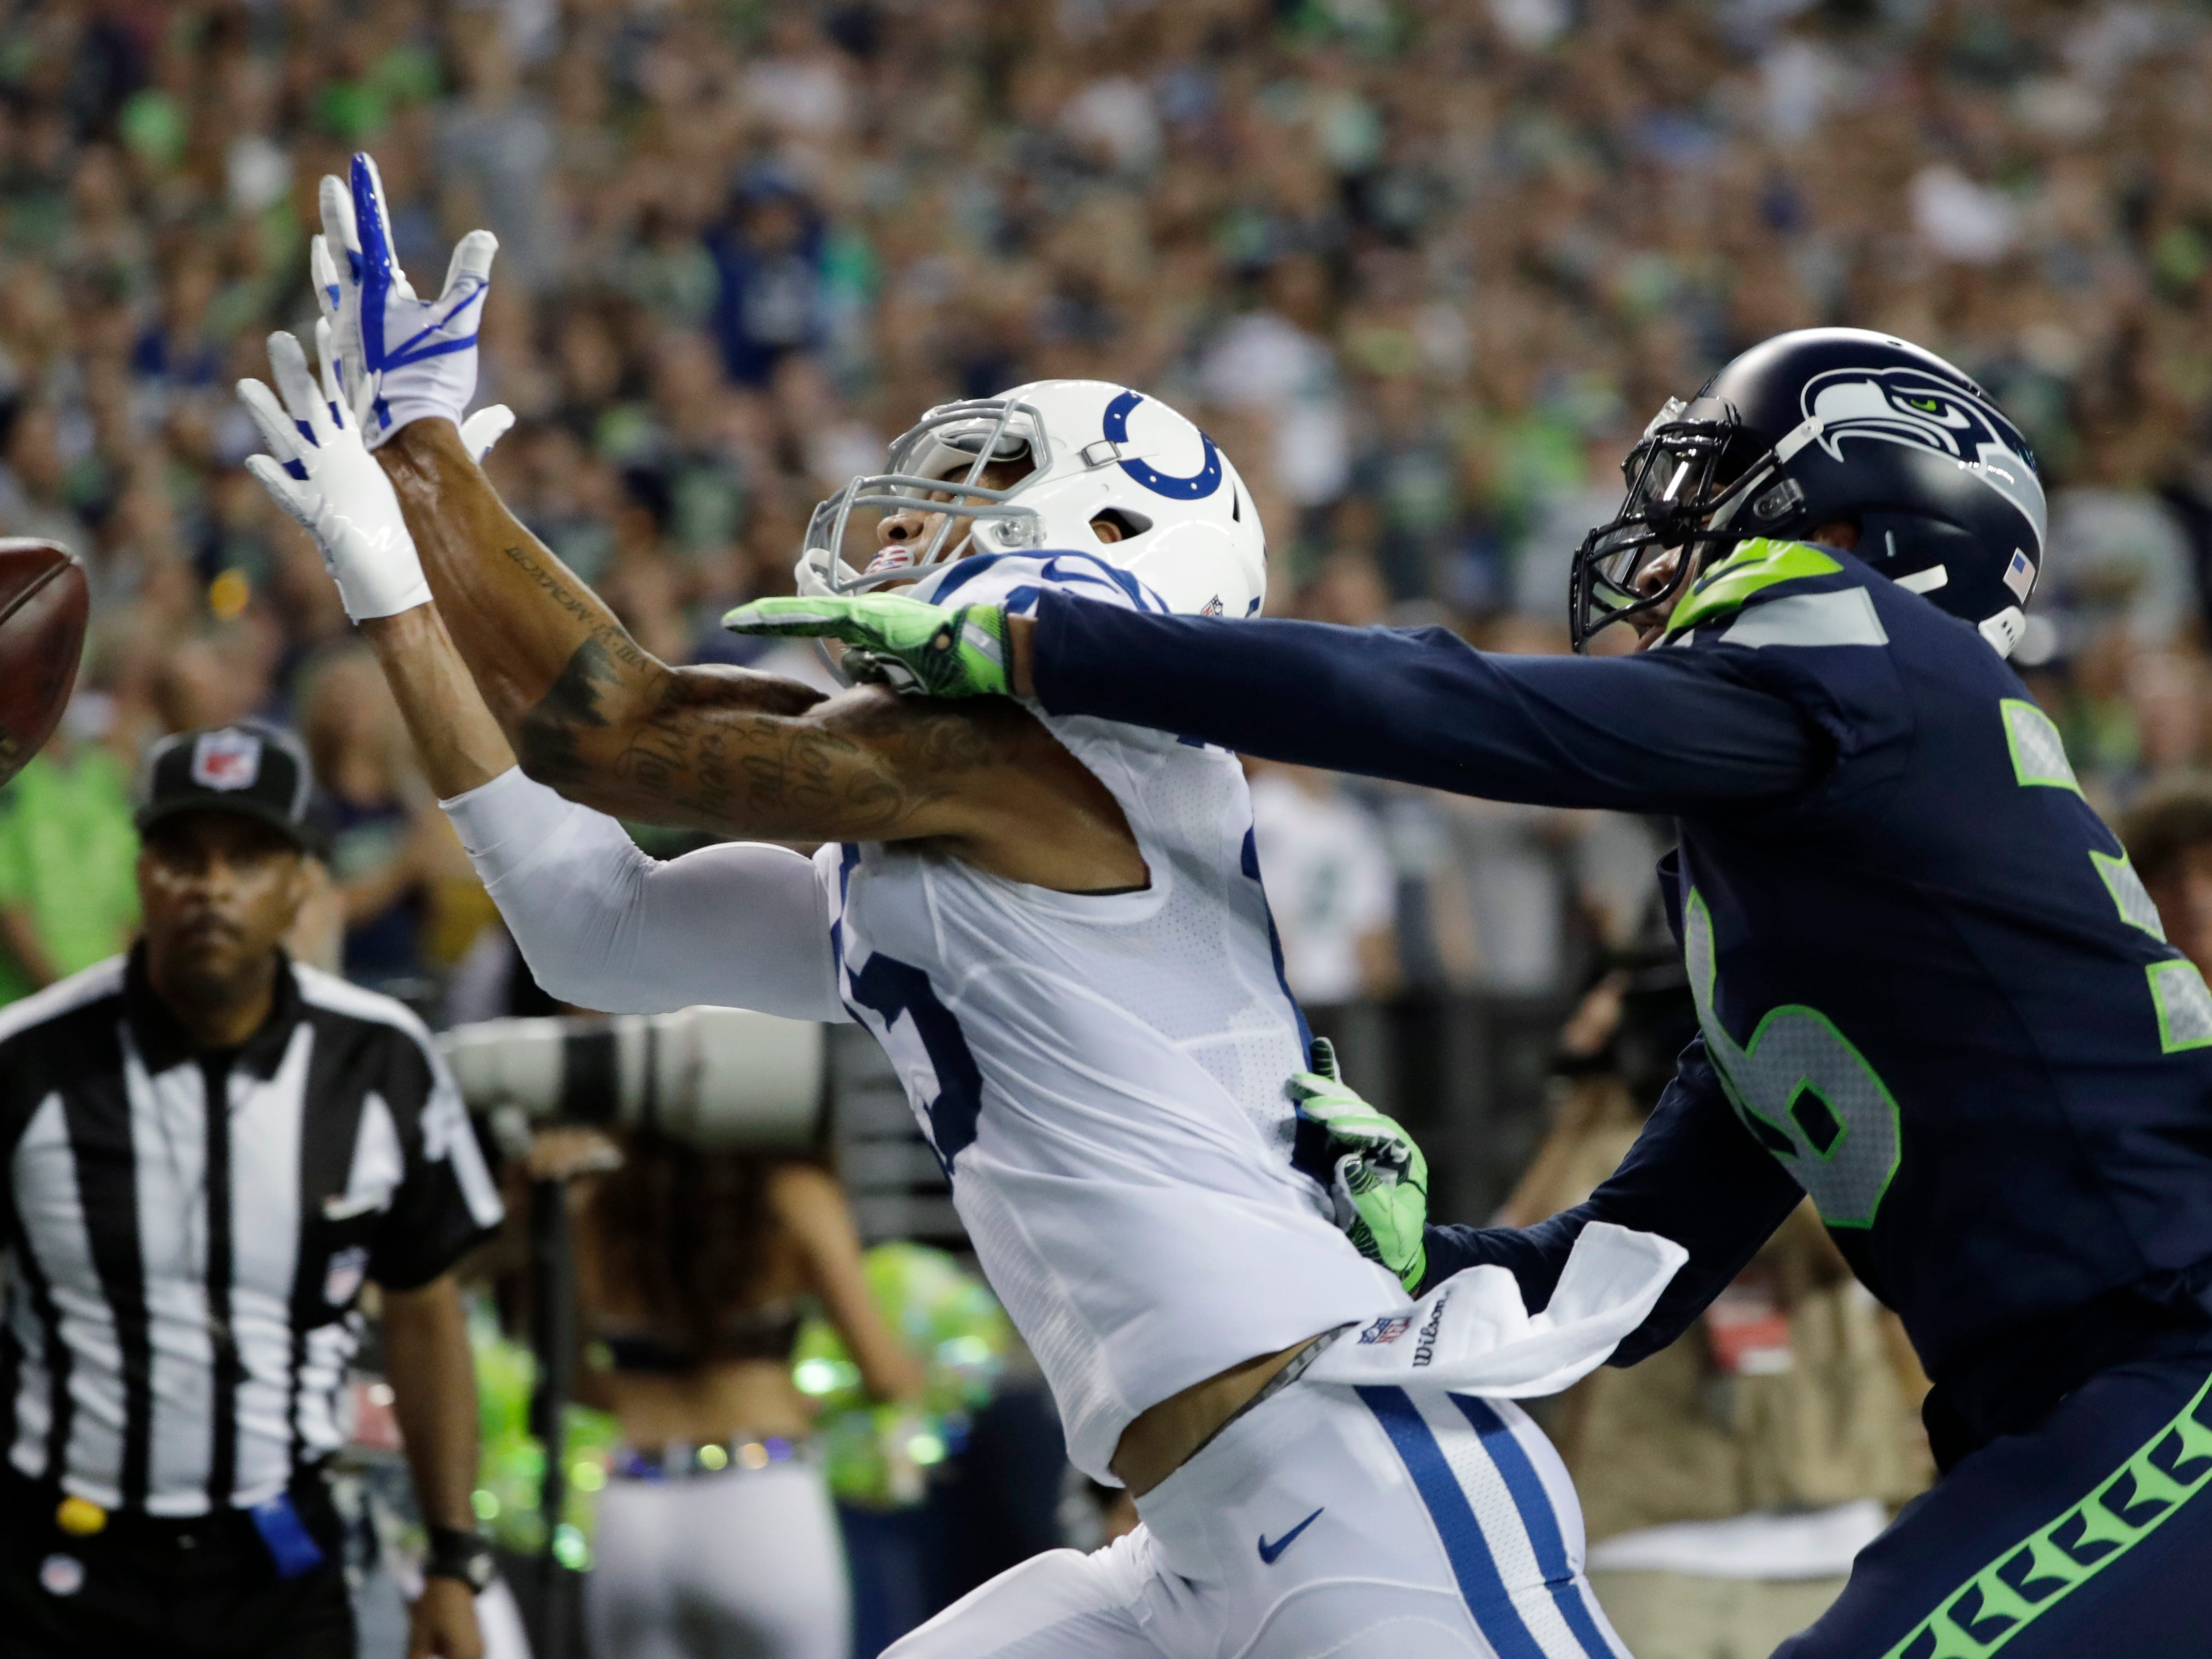 Seattle Seahawks defensive back Akeem King, right, breaks up a pass intended for Indianapolis Colts wide receiver K.J. Brent, left, during the second half of an NFL football preseason game, Thursday, Aug. 9, 2018, in Seattle. (AP Photo/Elaine Thompson)